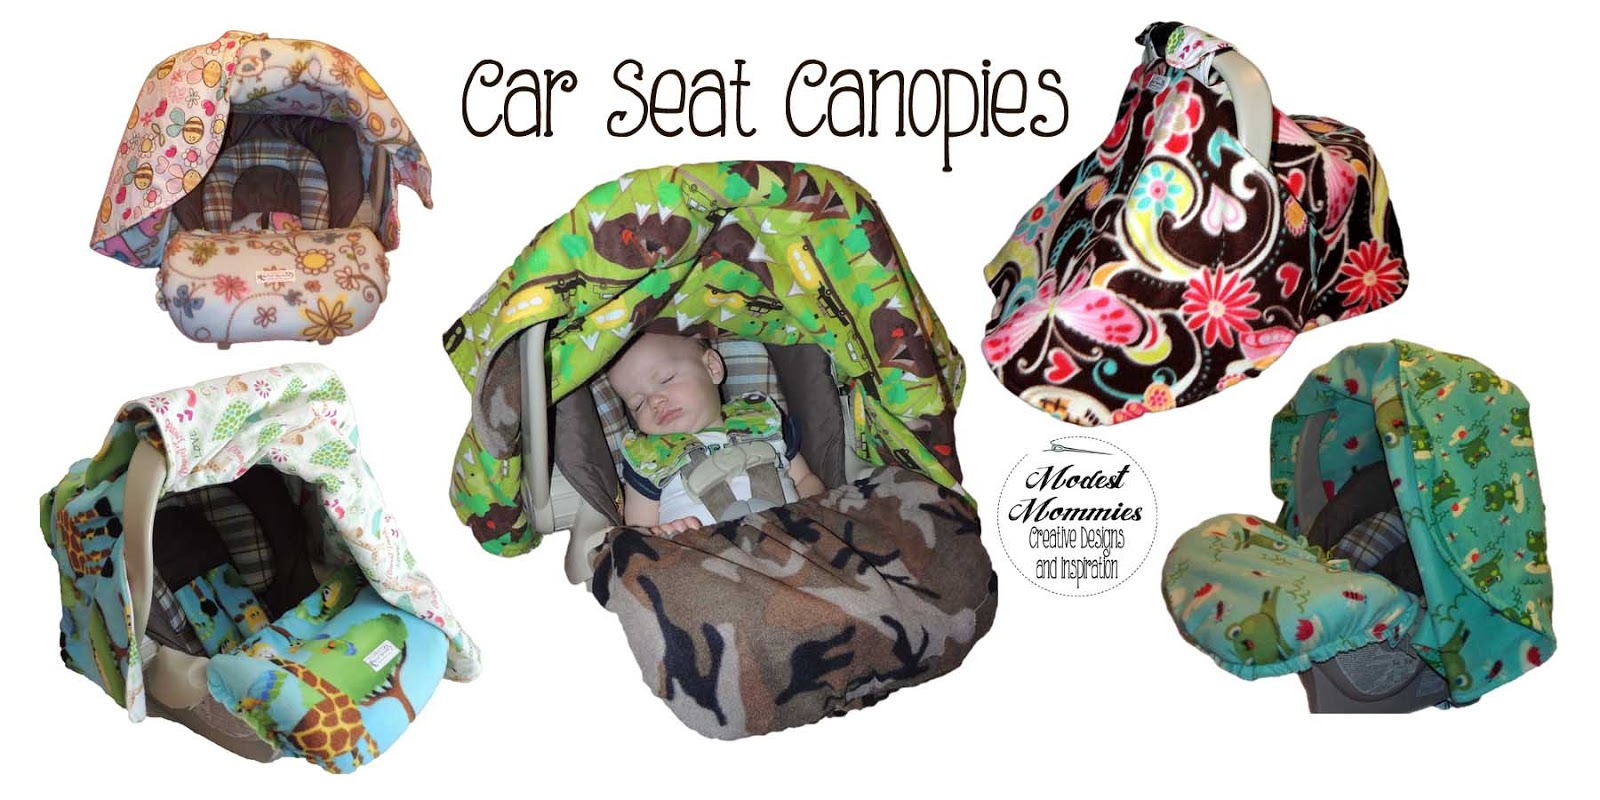 Modest Mommies Car Seat Canopies